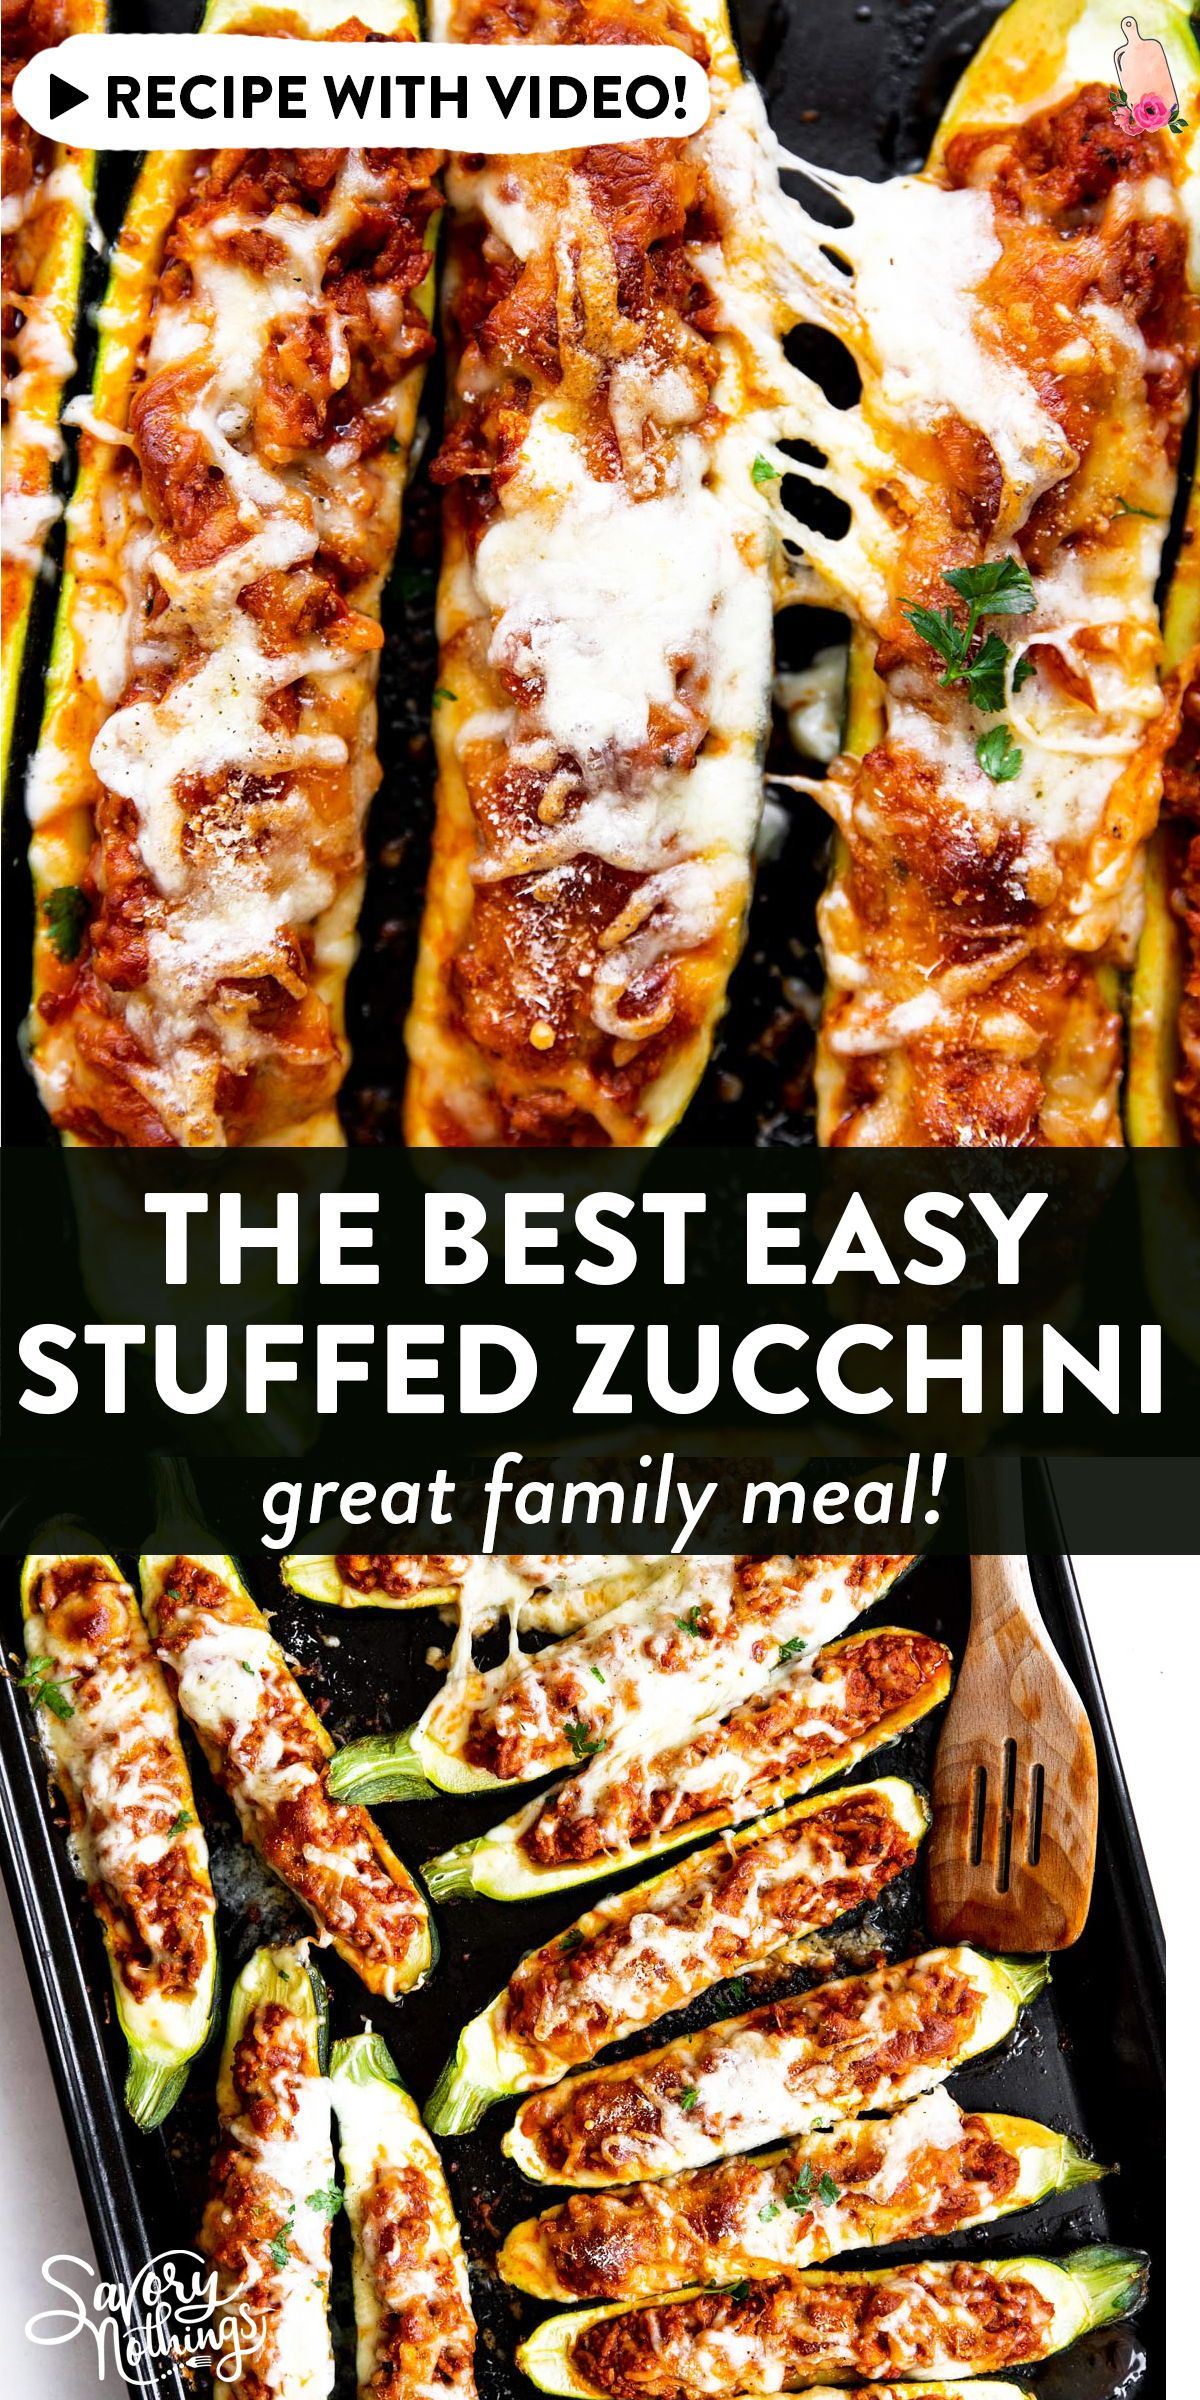 Easy Ground Beef Zucchini Boats In 2020 Zuchinni Recipes Zucchini Ground Beef Recipe Zucchini Boats Recipe Ground Beef